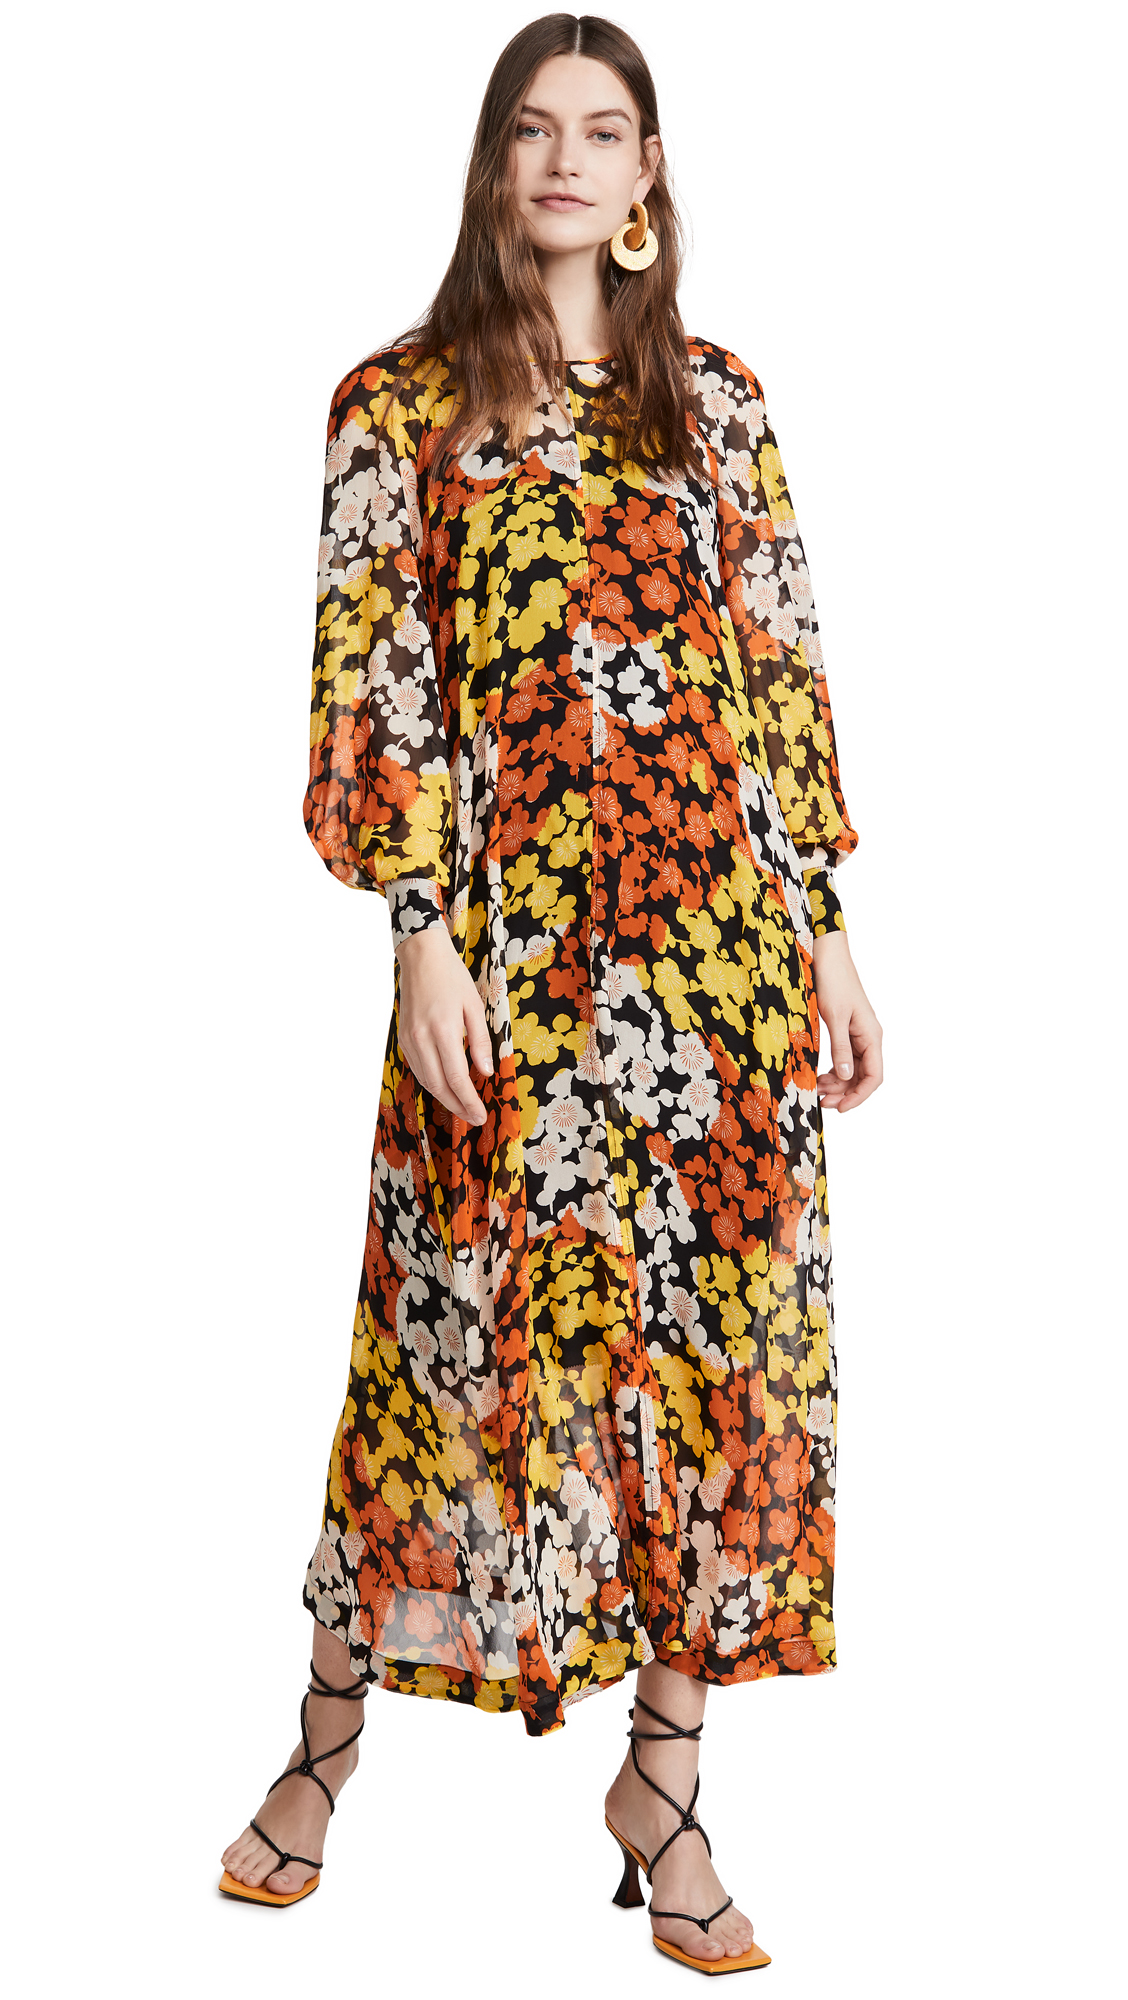 Buy McQ - Alexander McQueen Hisano Maxi Dress online beautiful McQ - Alexander McQueen Clothing, Dresses